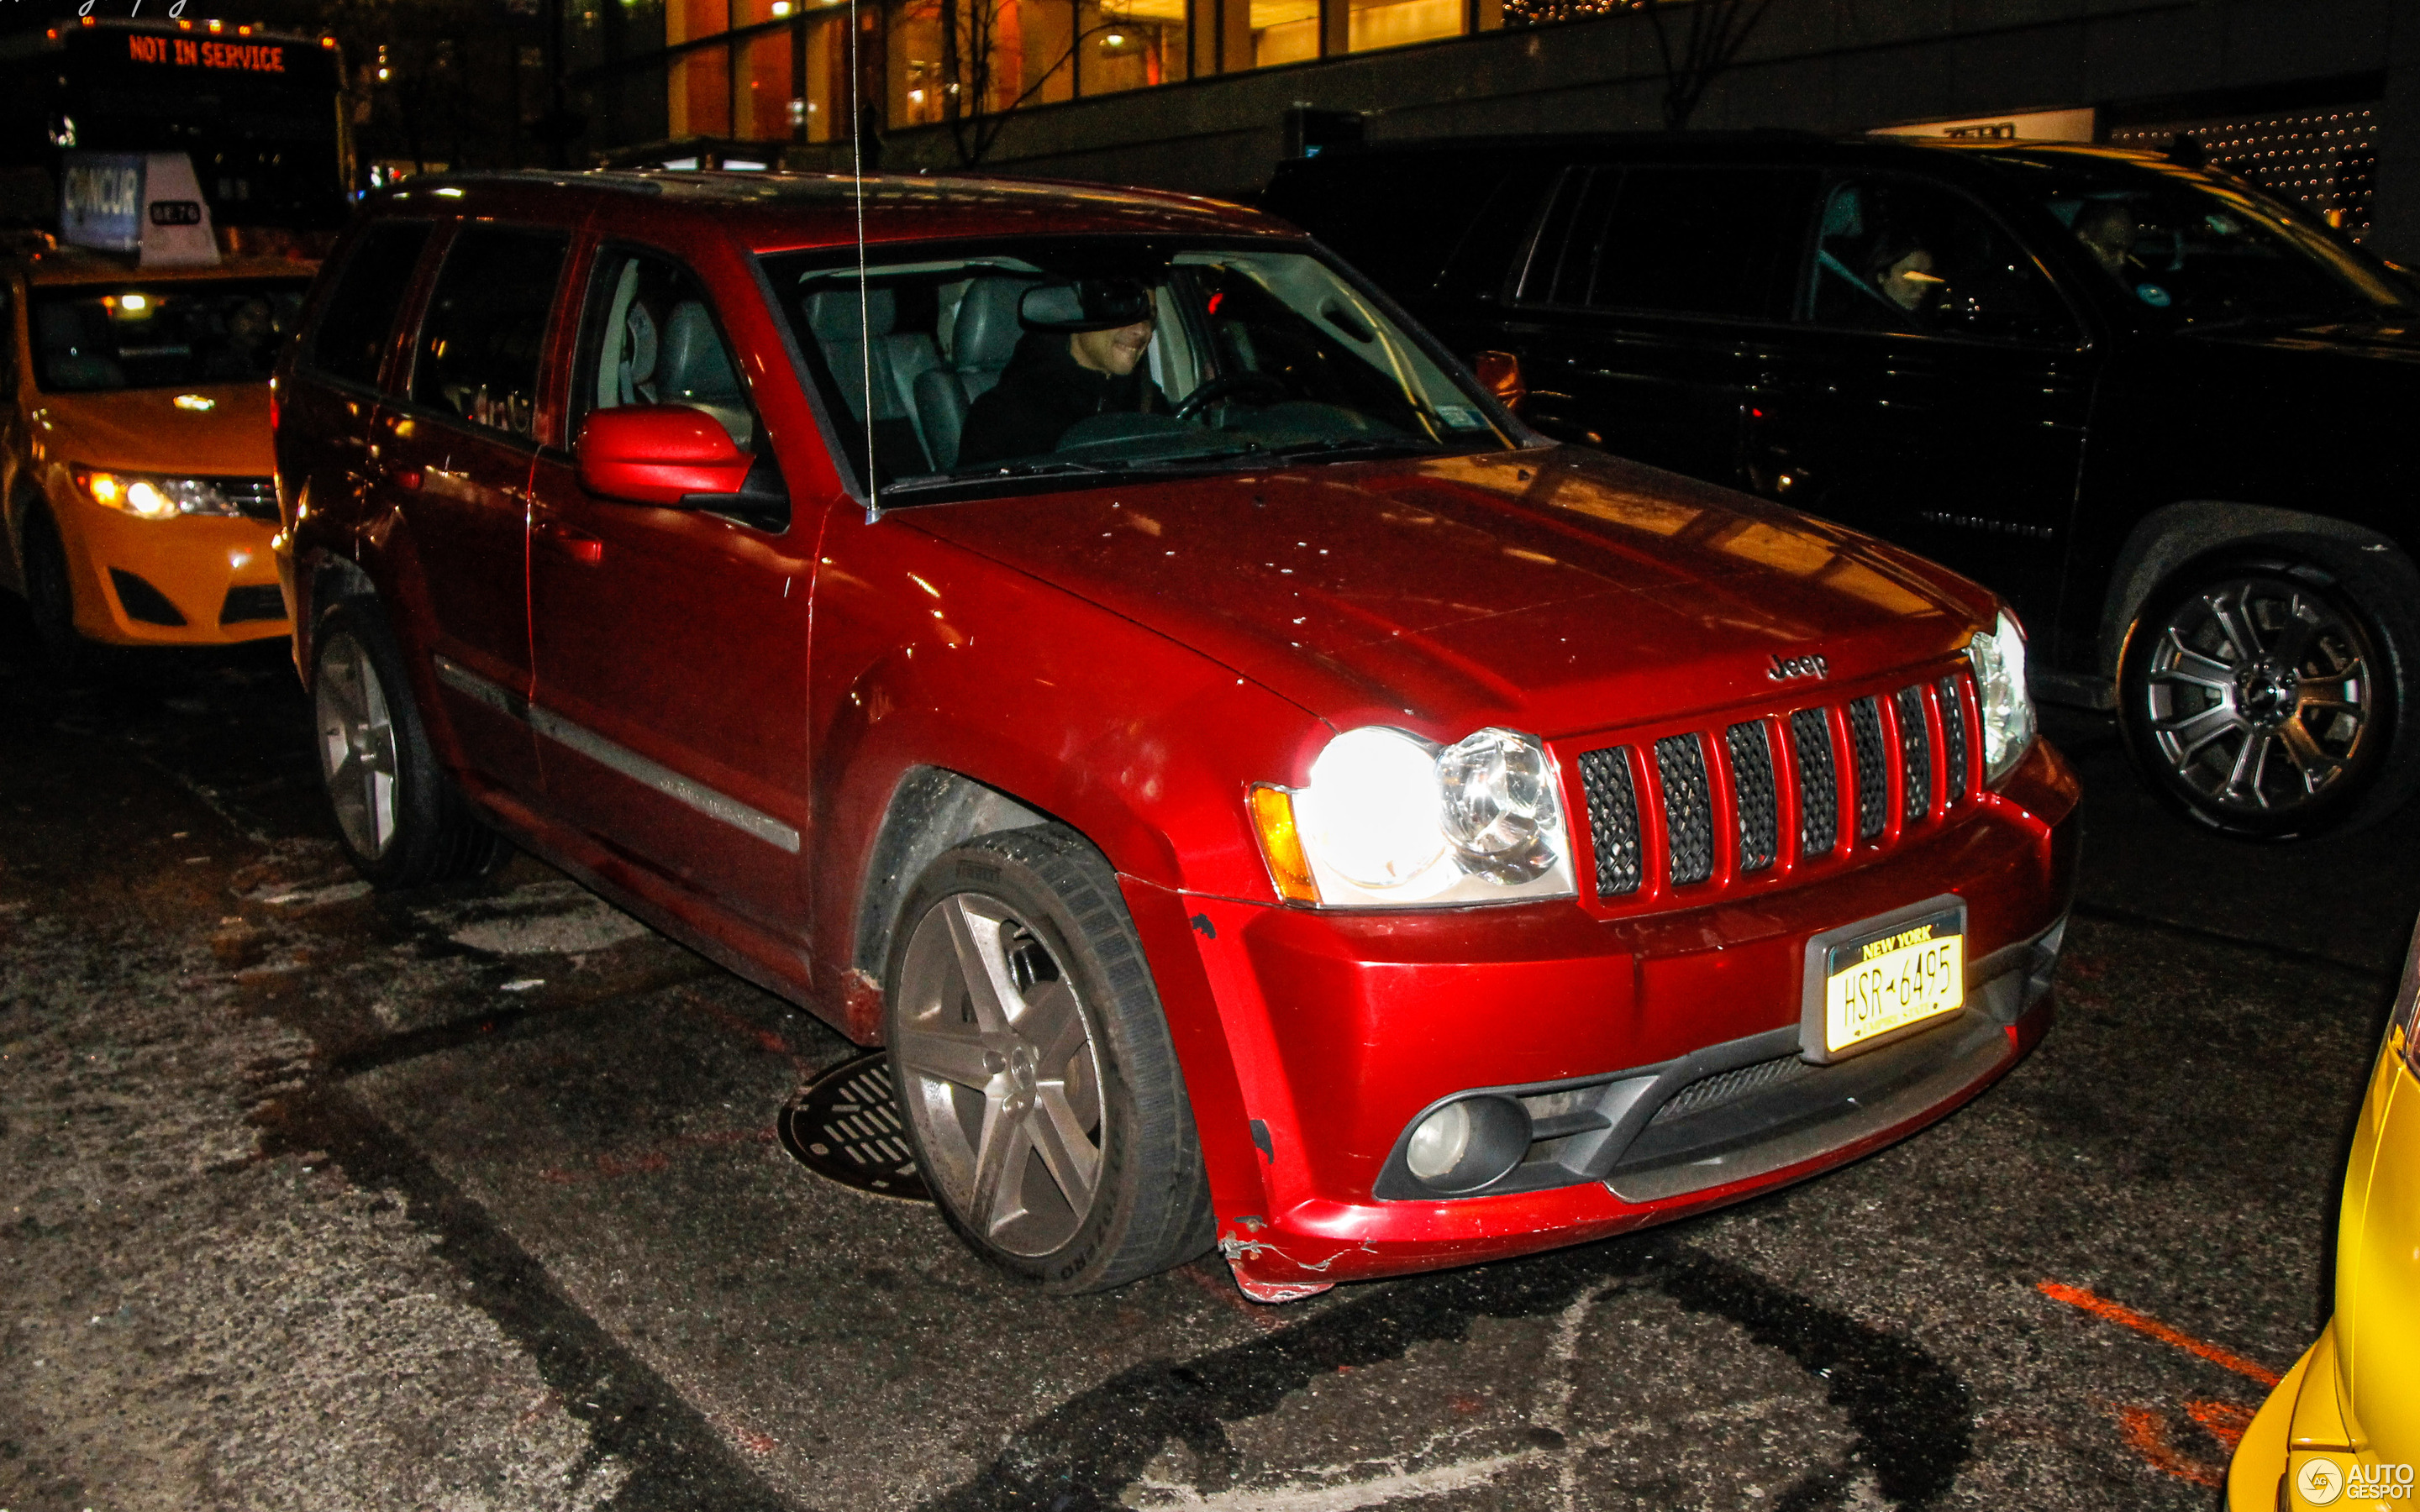 jeep grand cherokee srt-8 2005 - 8 march 2019